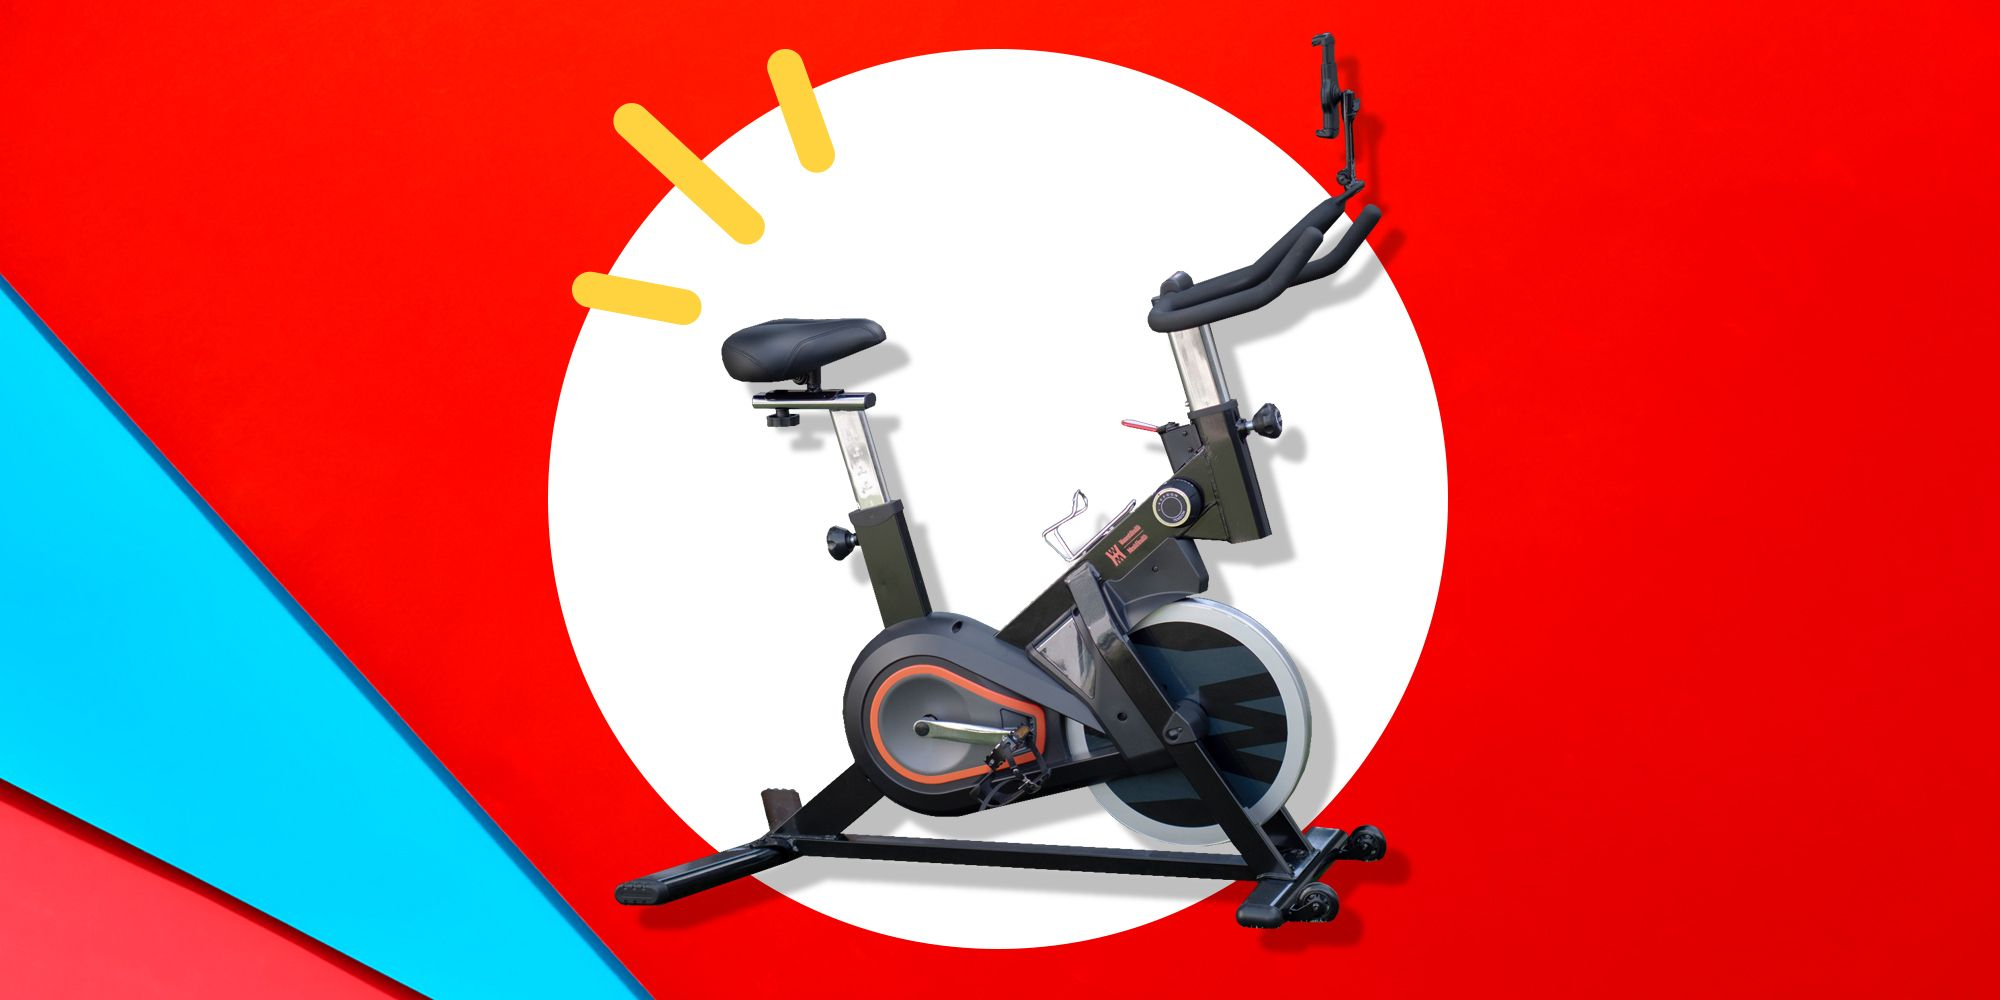 The Women's Health/Men's Health Exercise Bike Is On Sale On Amazon For Less Than $400